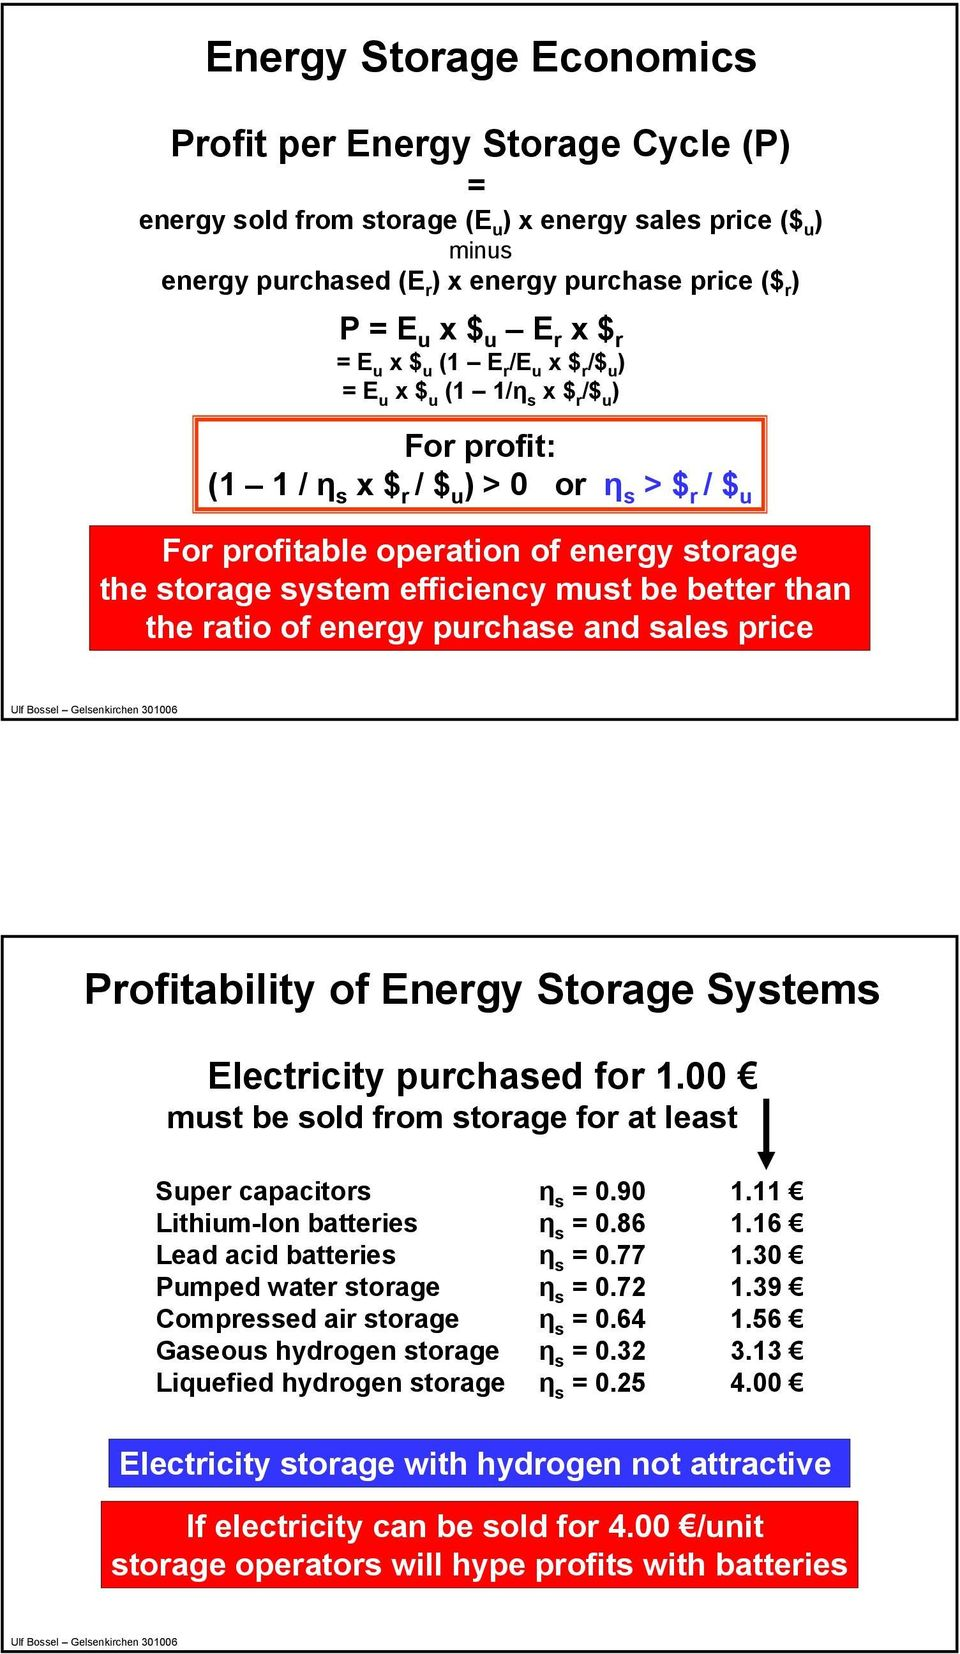 system efficiency must be better than the ratio of energy purchase and sales price Profitability of Energy Storage Systems Electricity purchased for 1.